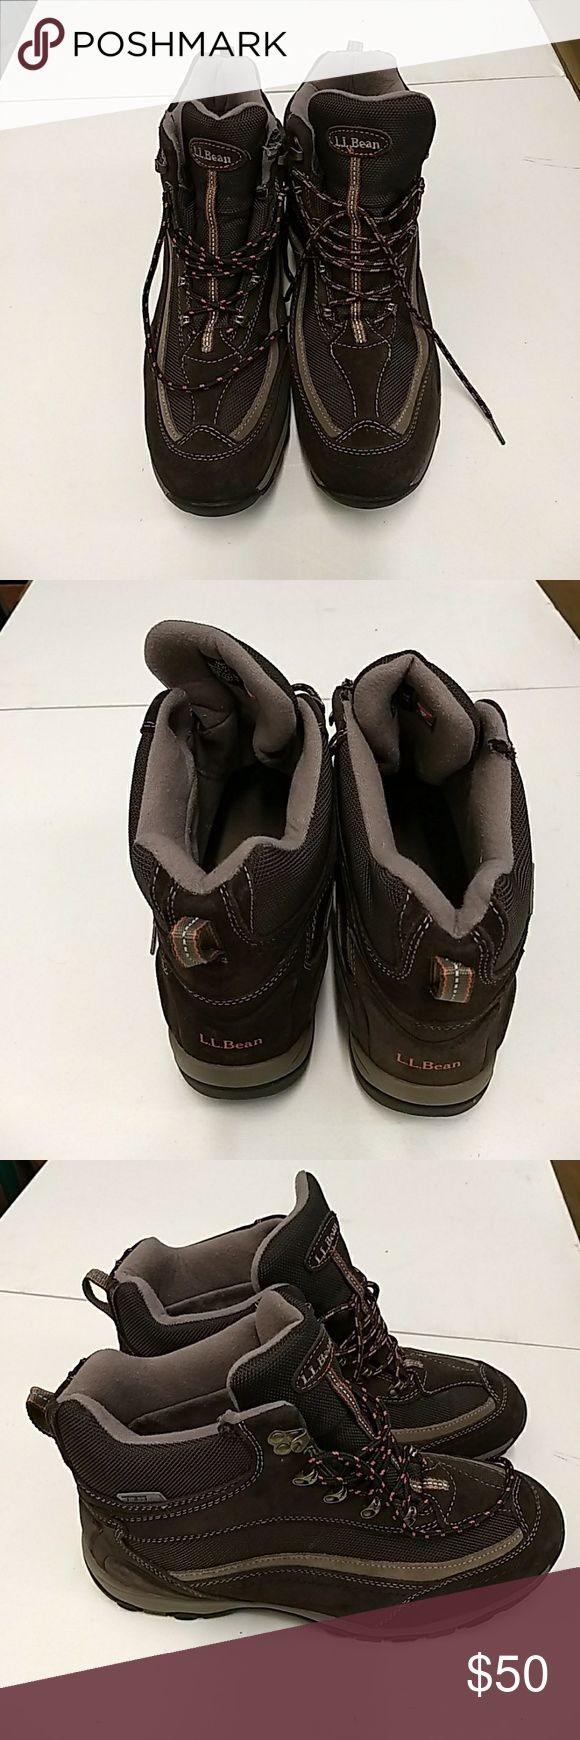 LL Bean Hiking Boots LL Bean Lightweight Men's Hiking Boots. TEK 2.5   200gr.  Near new condition BUT my puppy   thought the right shoe was his chew toy. See last pic. These boots can be used . LL Bean Shoes Boots